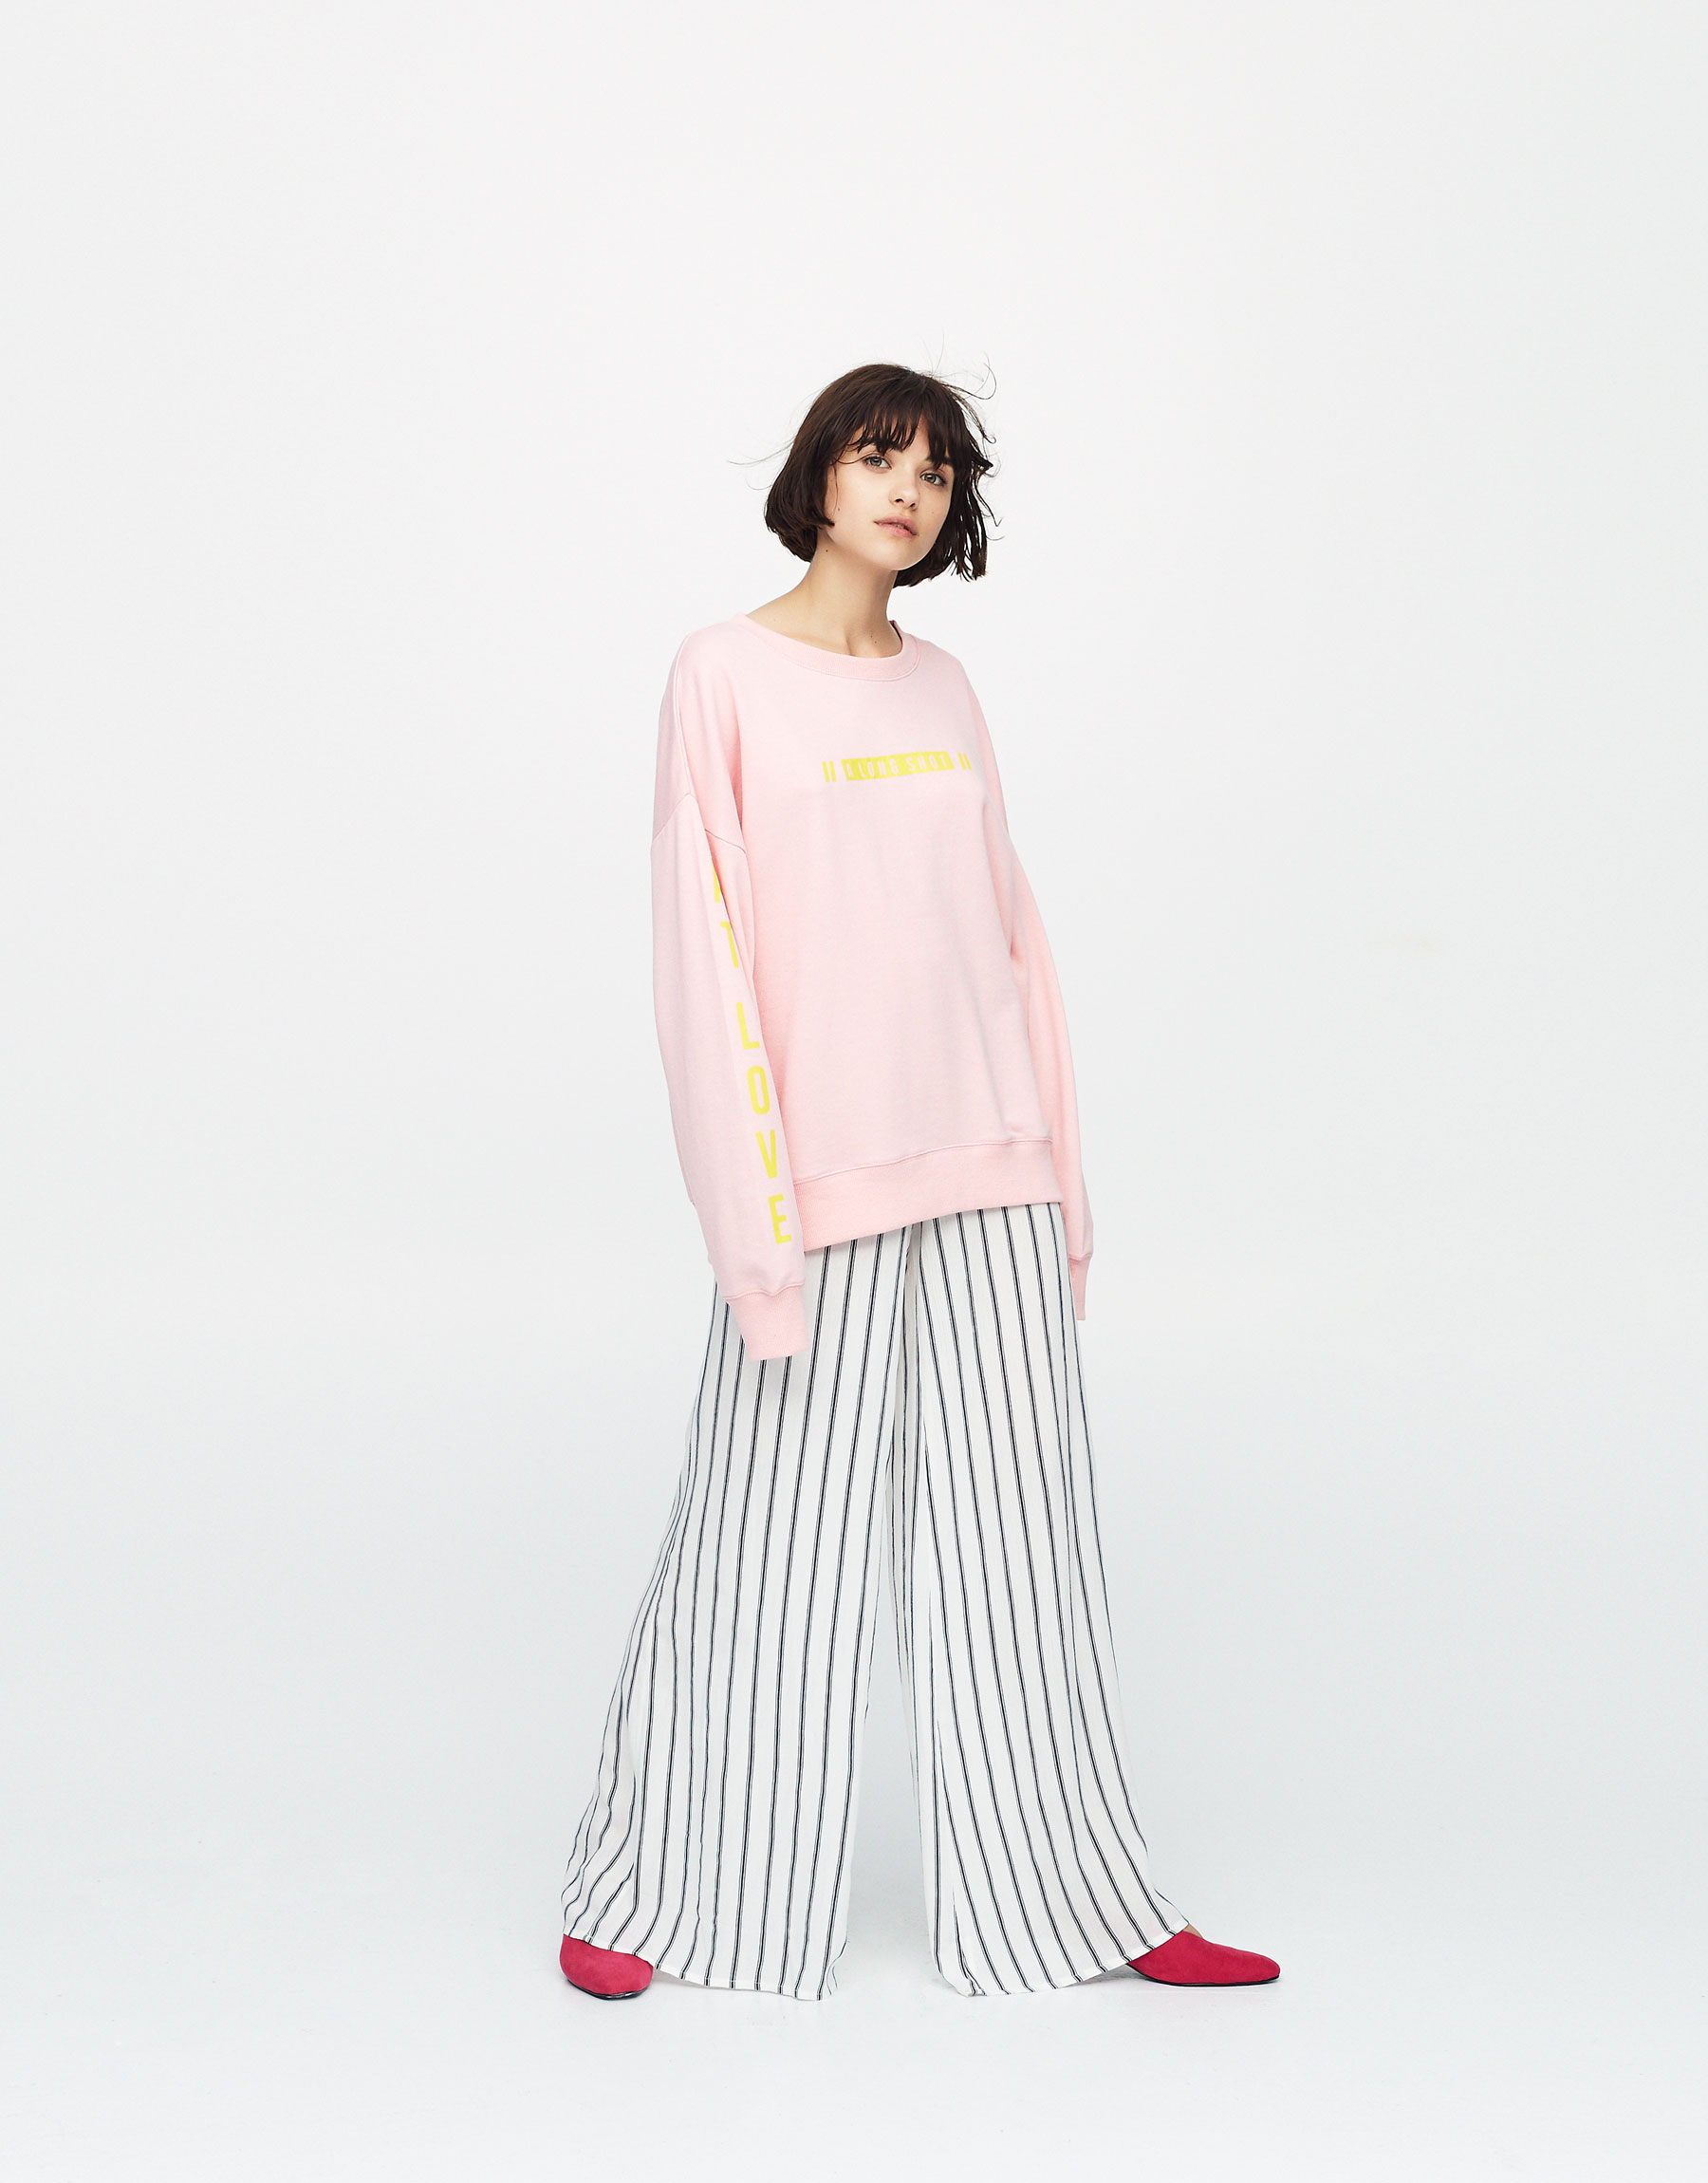 Sweatshirt with slogan on front and sleeve